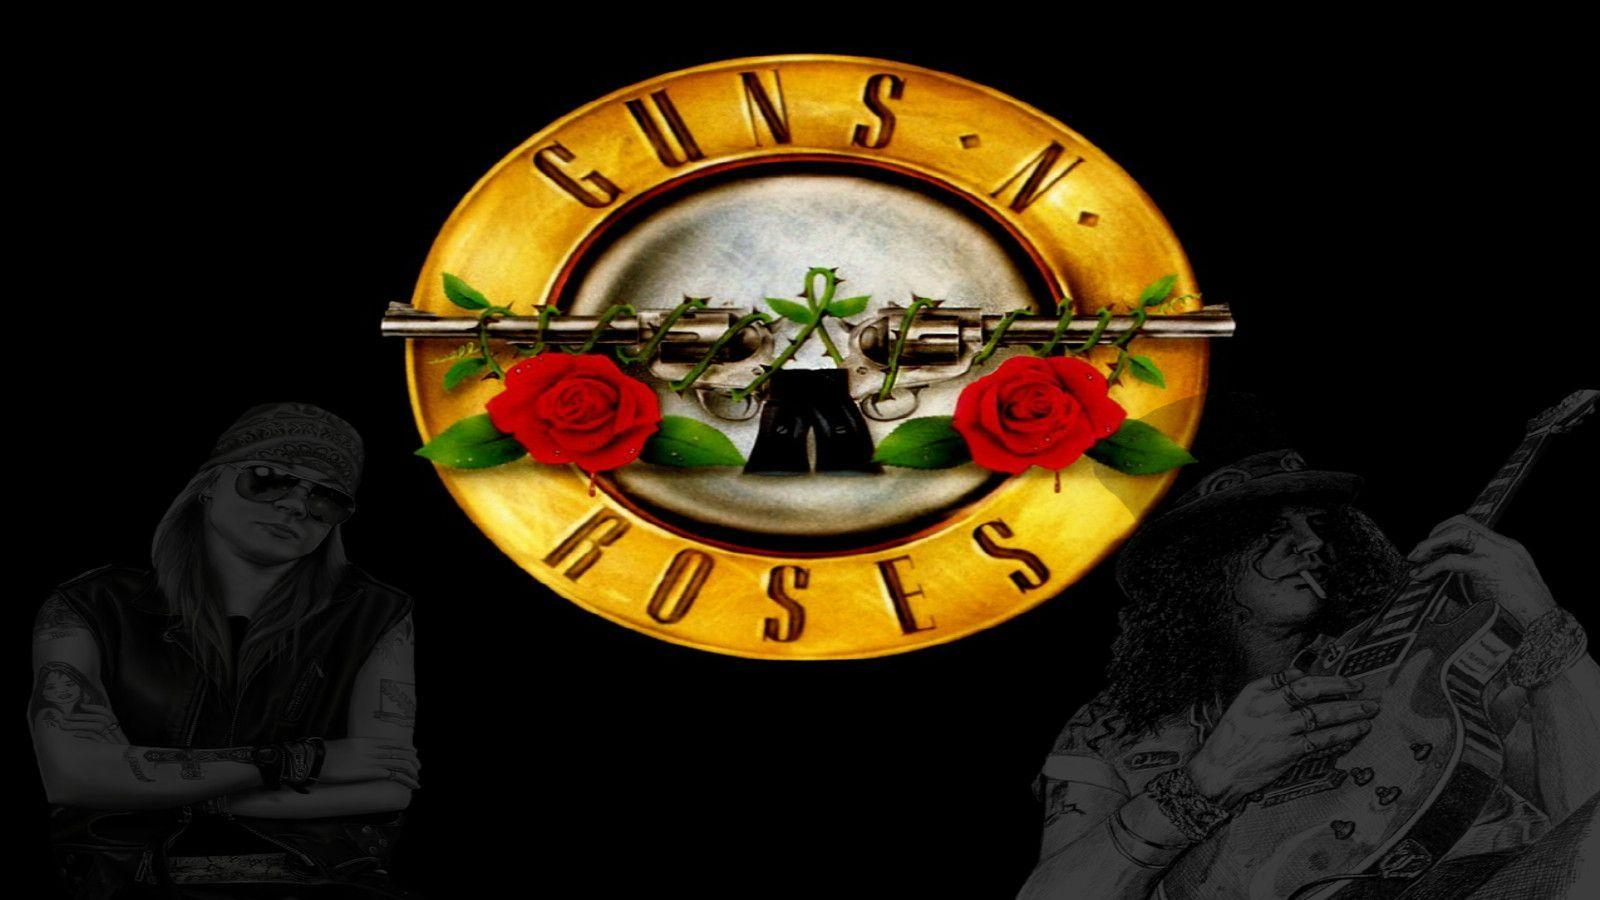 Guns n 39 roses logo wallpapers wallpaper cave - Wallpaper guns and roses ...